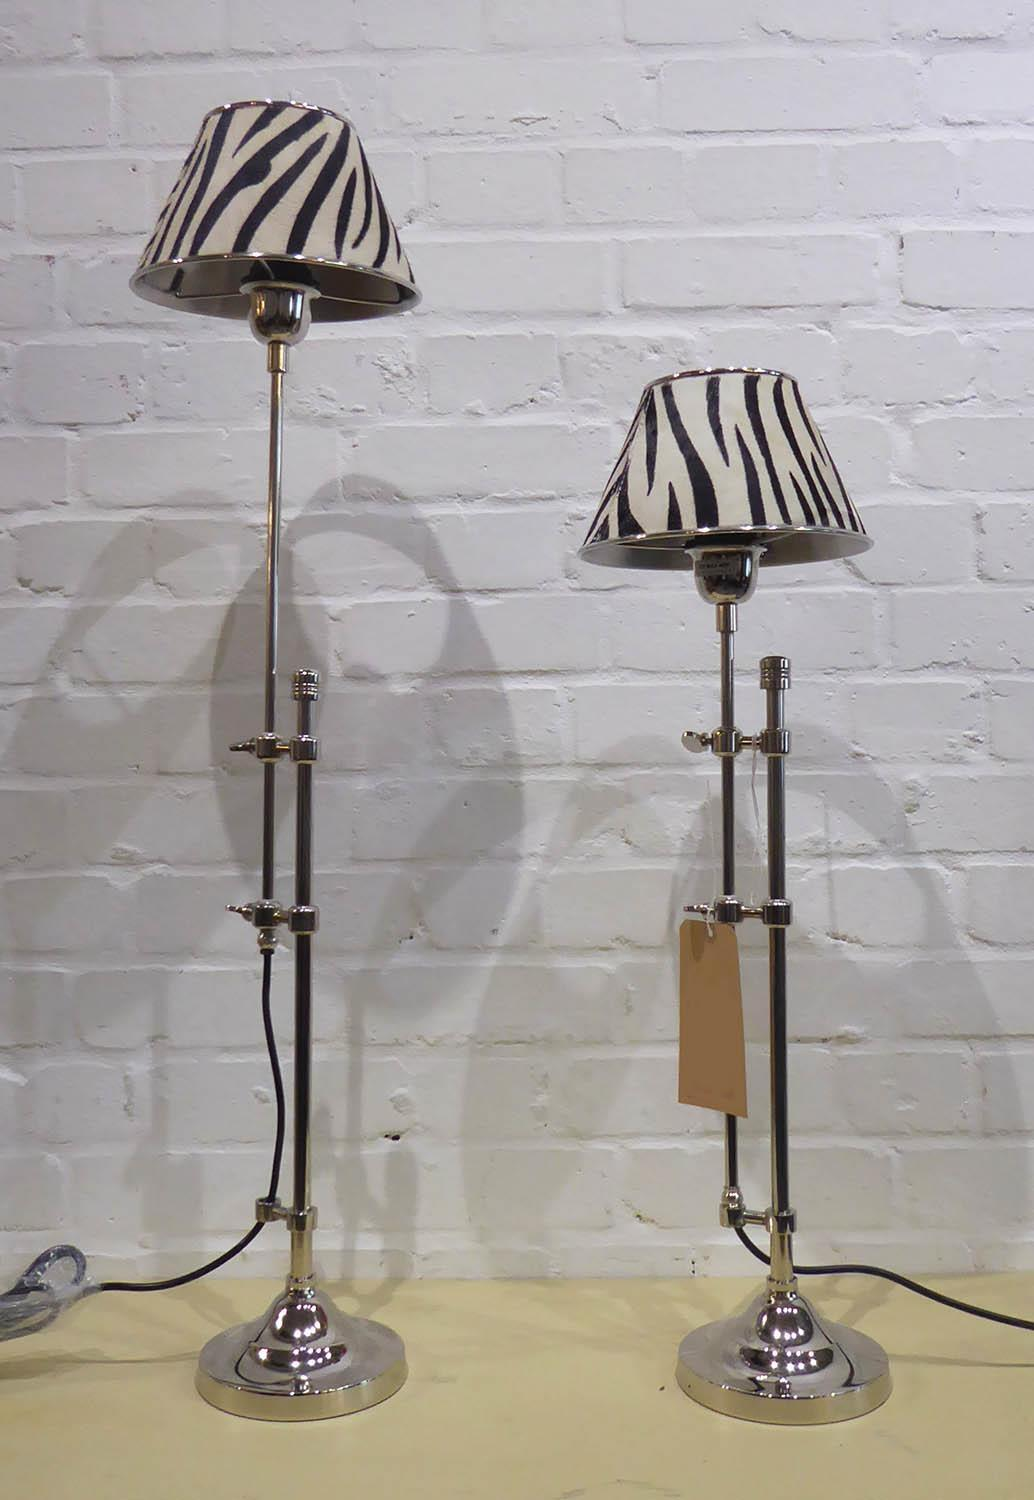 LIBRARY READING LAMPS, a pair, faux zebra skin shades, 89cm at tallest approx. (2)